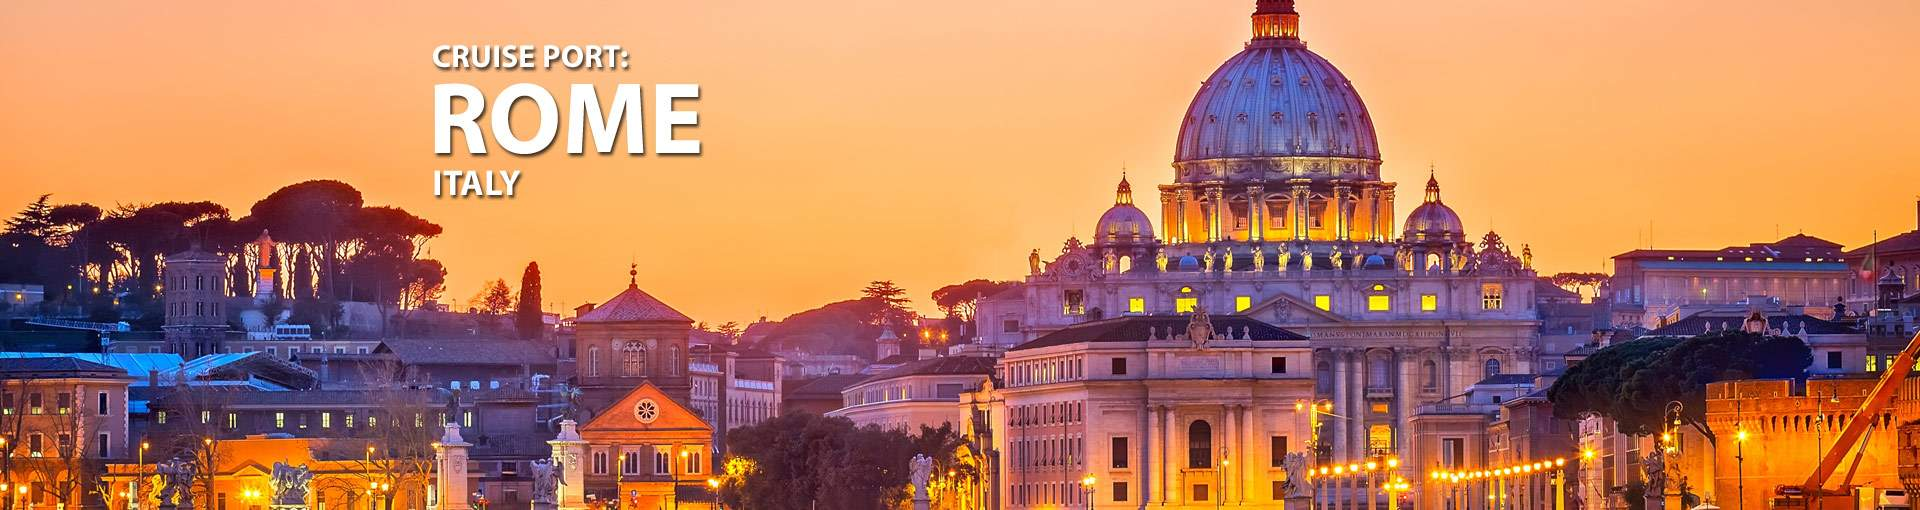 Cruises from Civitavecchia, Rome, Italy